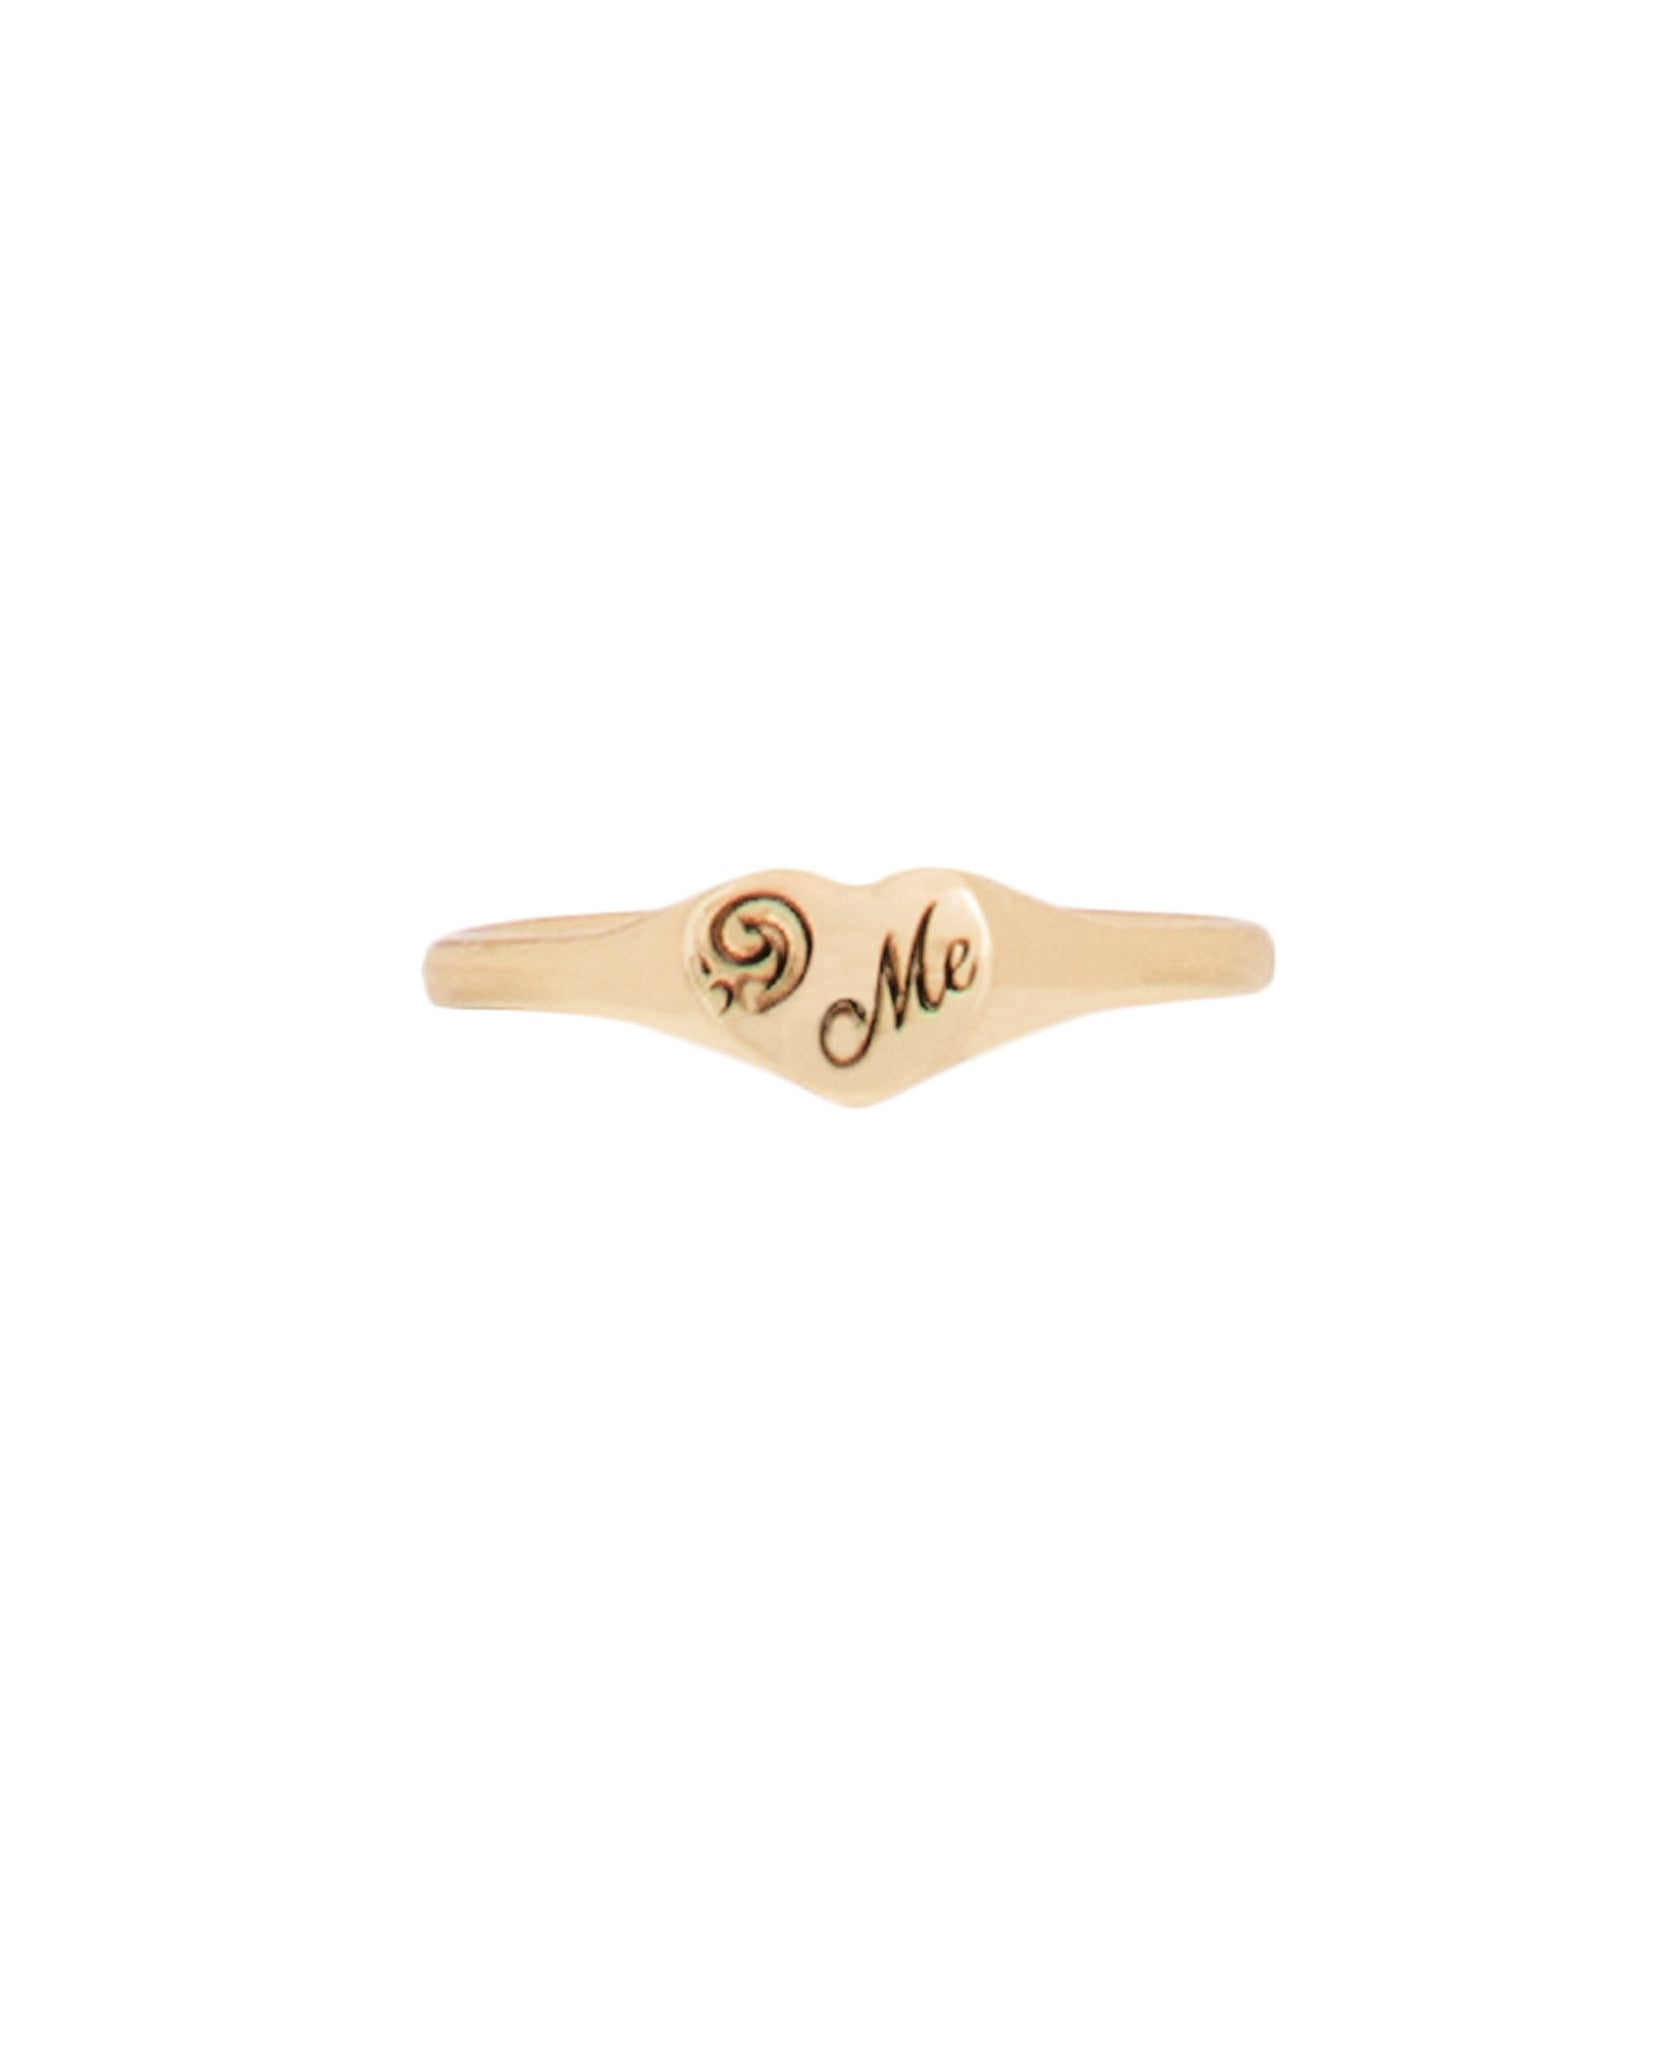 'Me' Heart Signet Ring